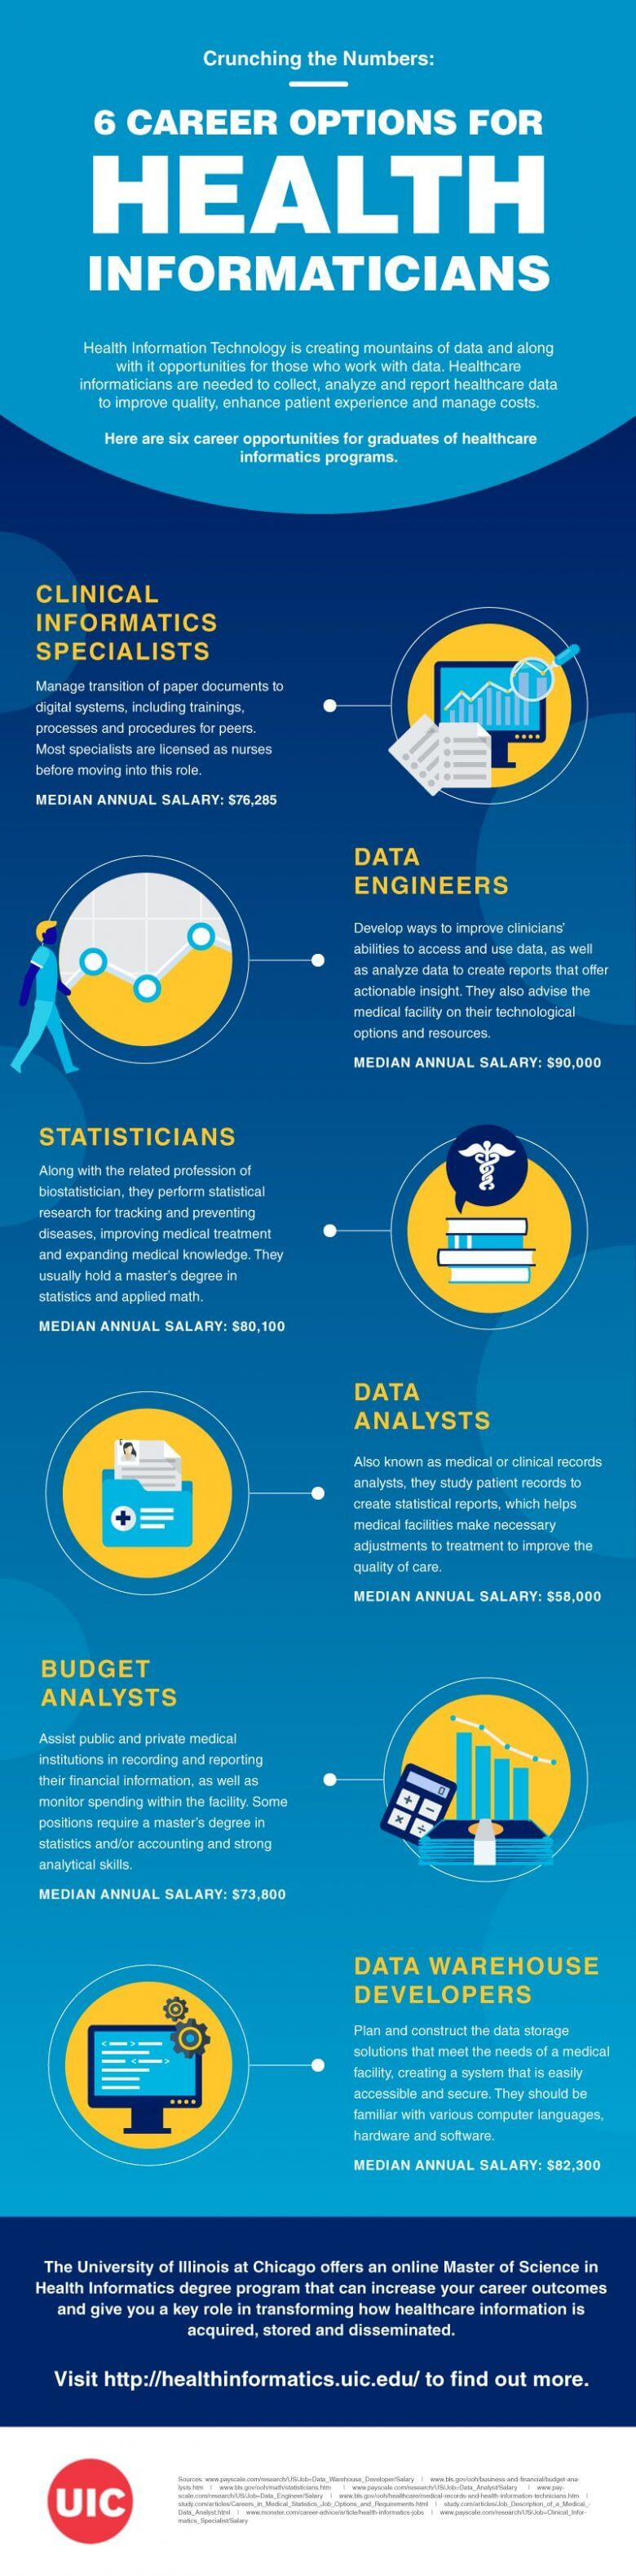 Infograph detailing six career options for health informaticians